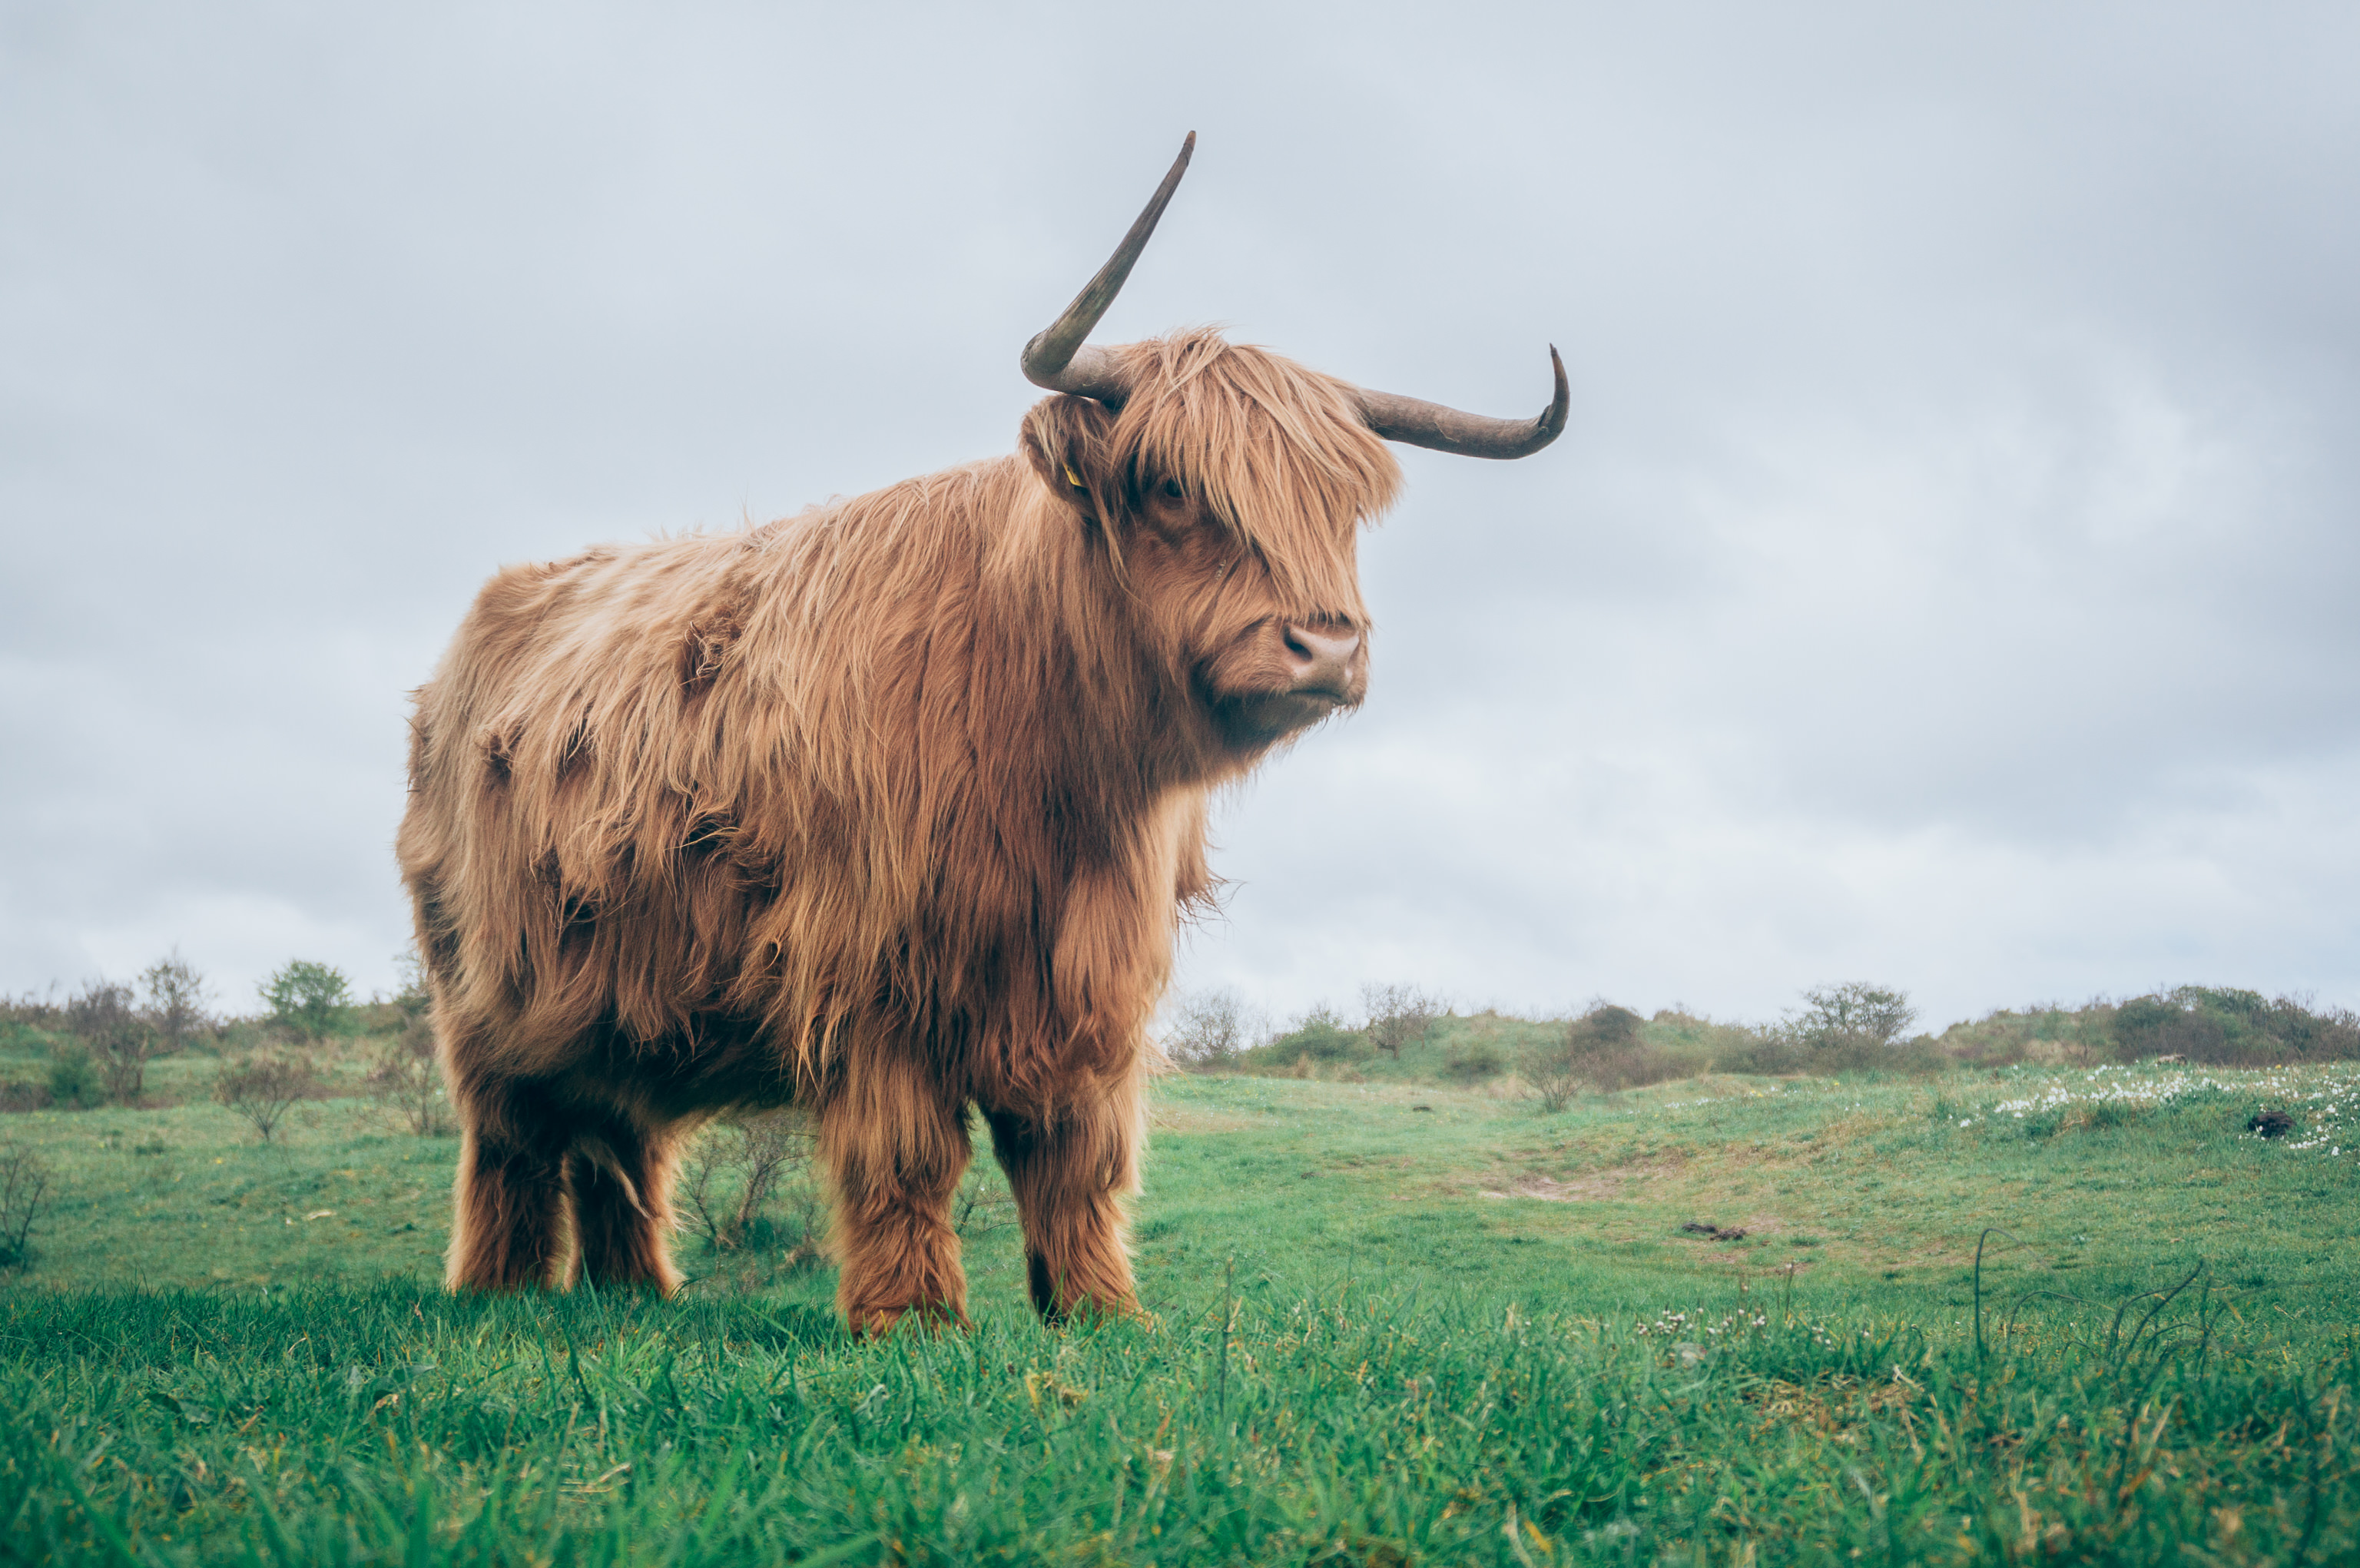 97486 download wallpaper Animals, Bull, Horns, Fur, Grass screensavers and pictures for free